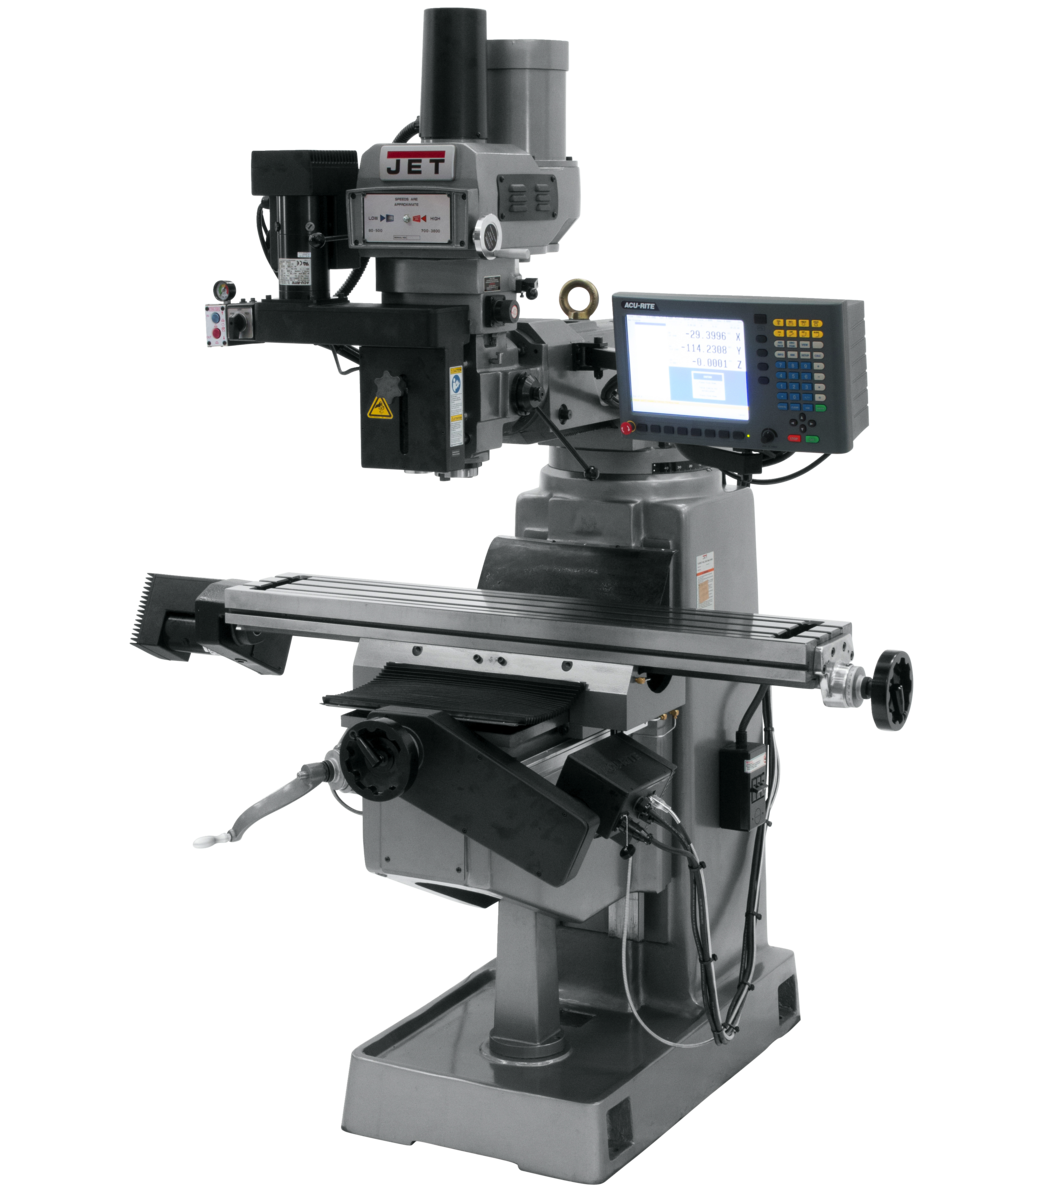 JTM-949EVS/230 Mill With 3-Axis ACU-RITE G-2 MILLPWR CNC